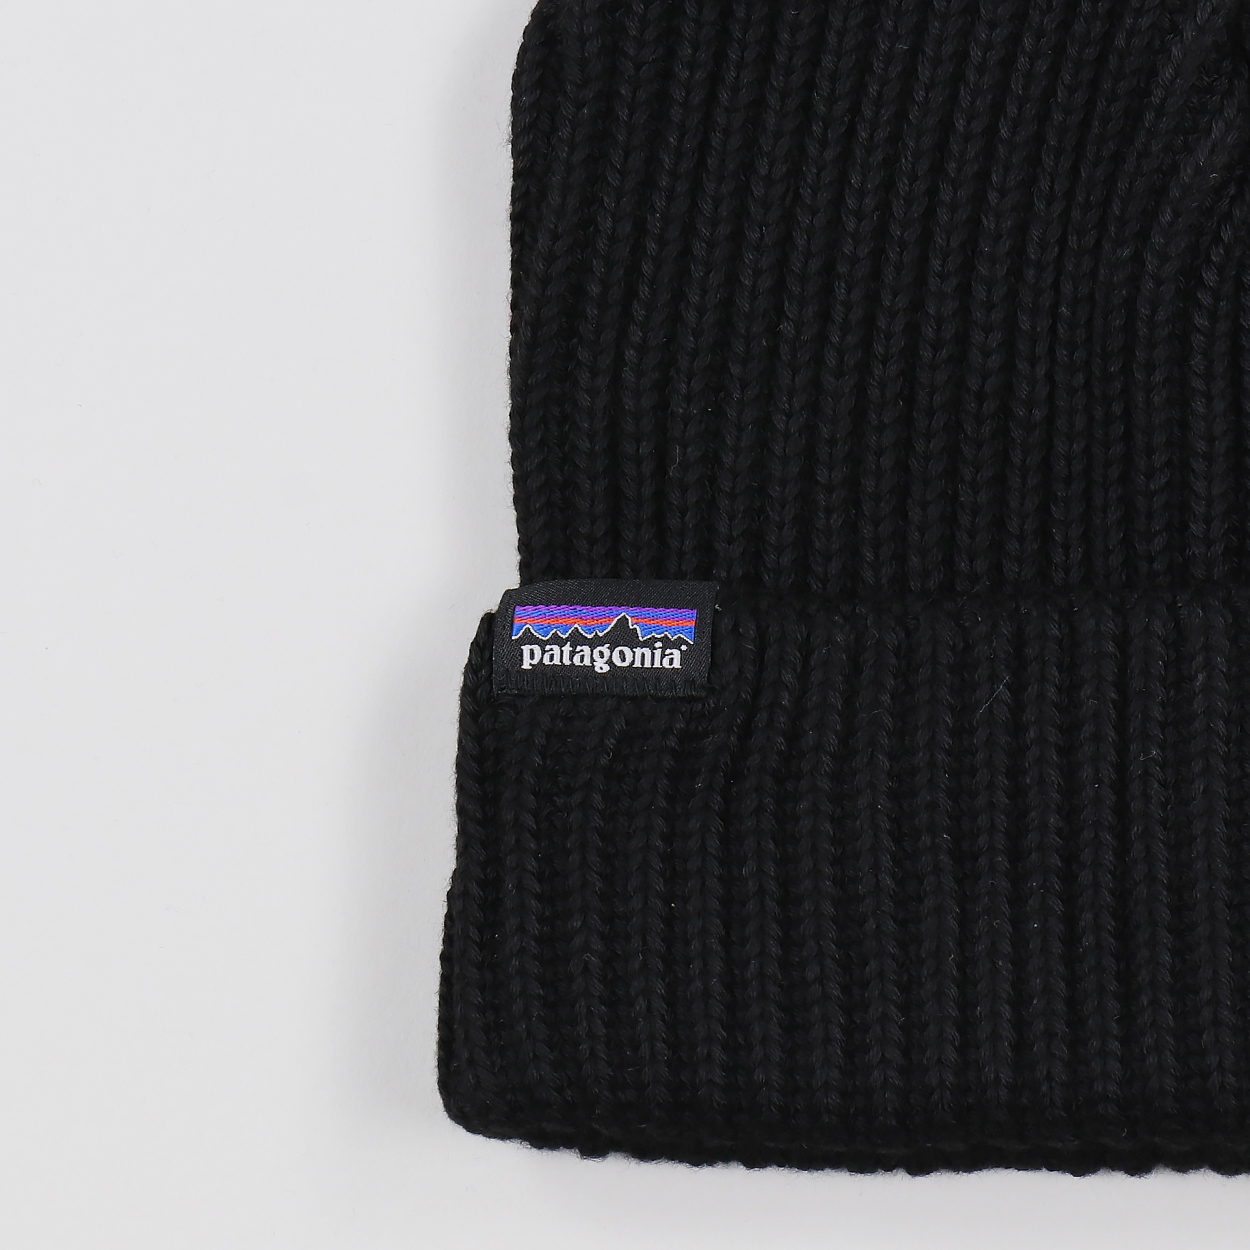 148a202123c Patagonia s standard cuffed and rolled beanie hat with their iconic P-6  logo tab. Super soft